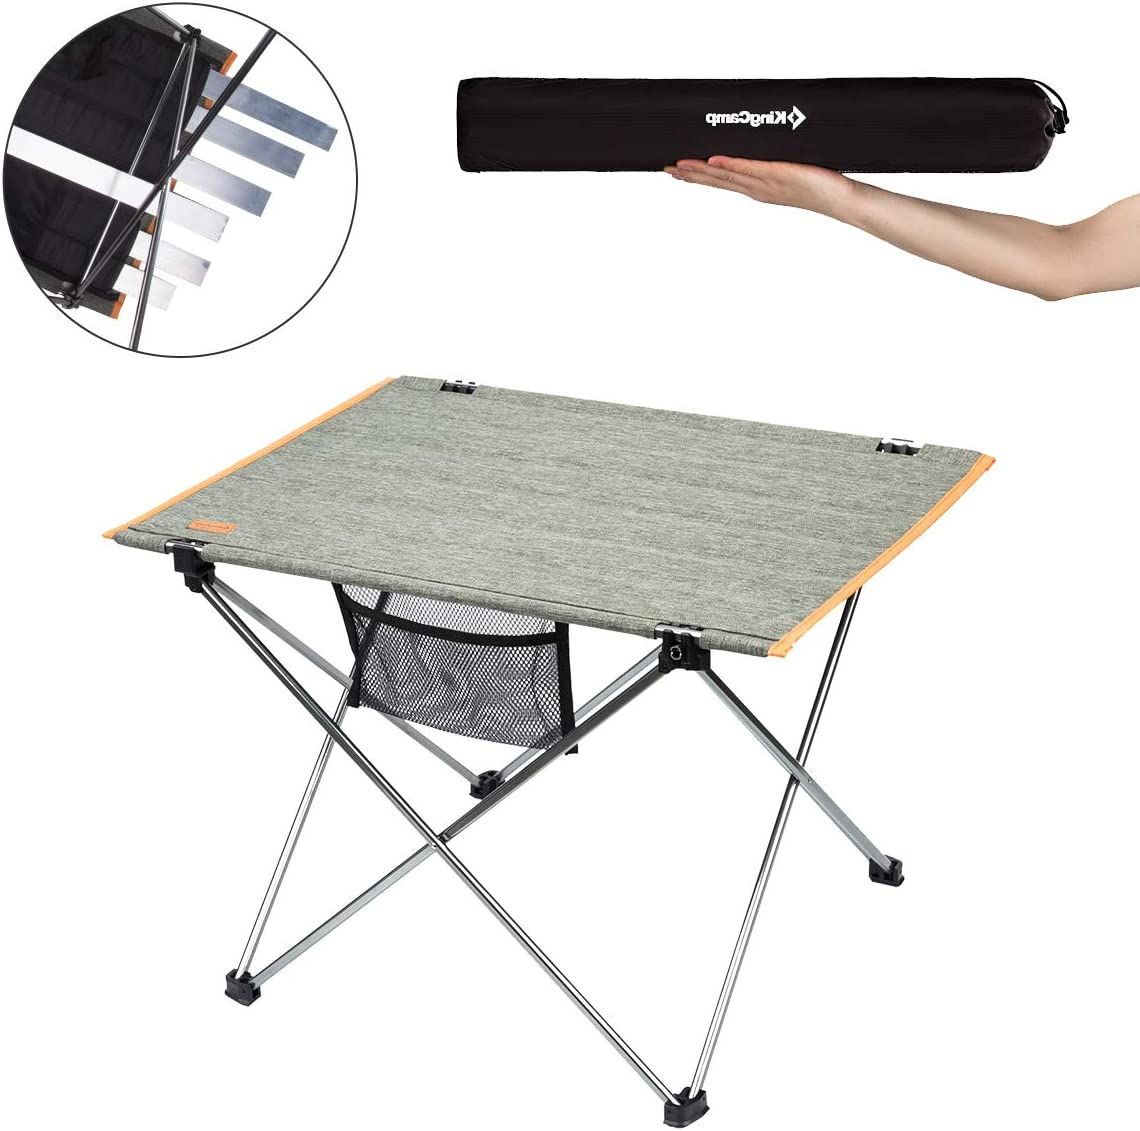 Backyards KingCamp Ultralight Camping Aluminum Folding Table 3 Size Compact Roll Up with Carry Bag for Camping Picnic BBQ